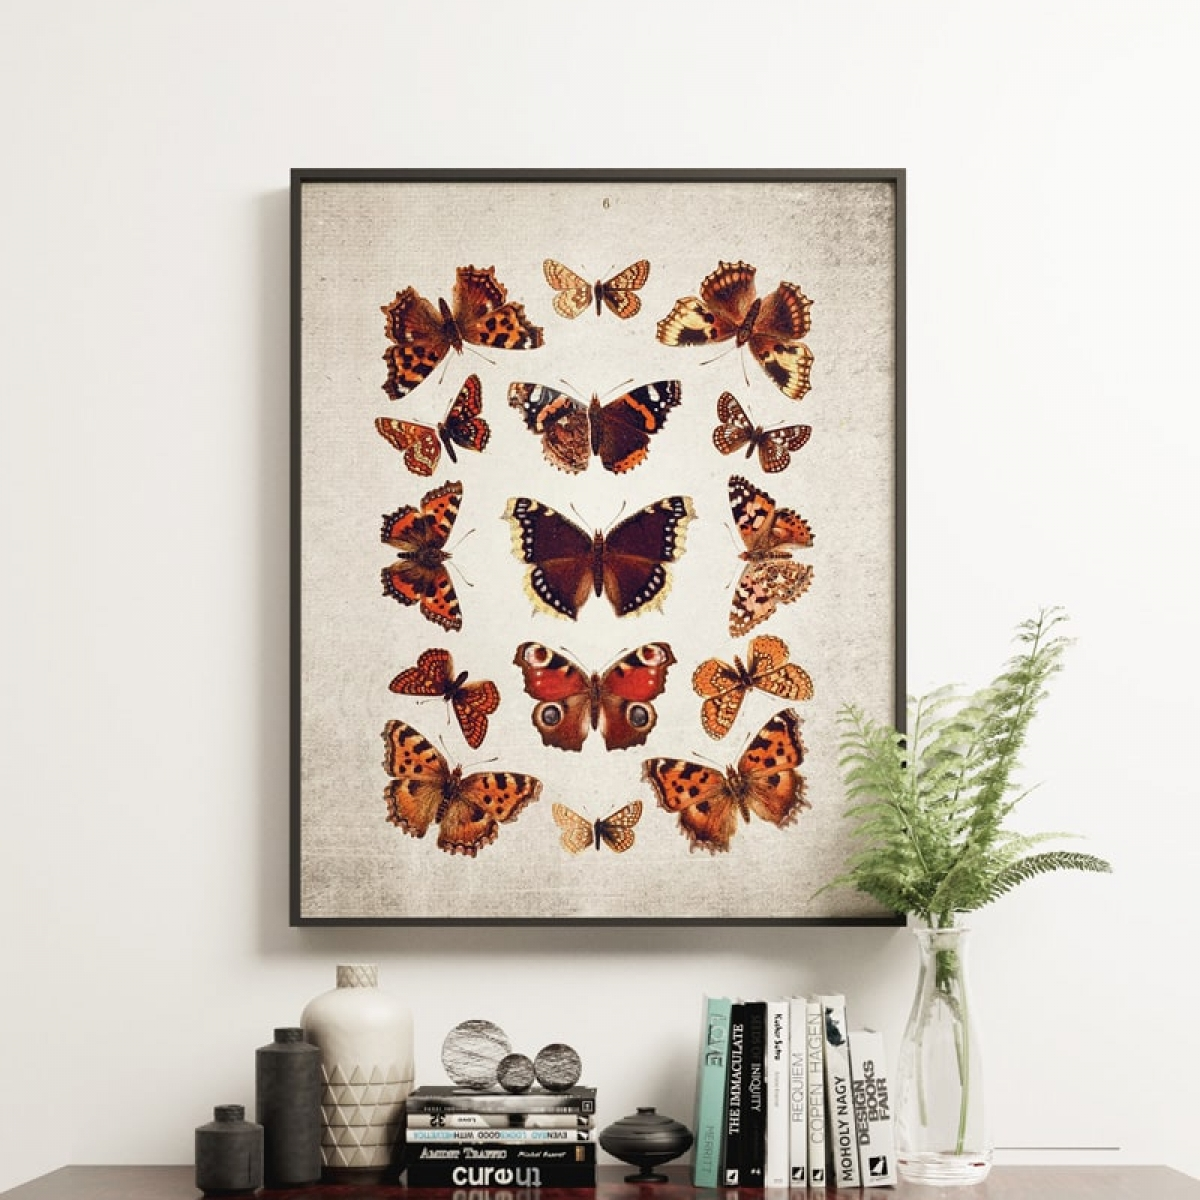 Minibeast Vintage Entomology Giclee Print (British Butterflies Plate From 1837)